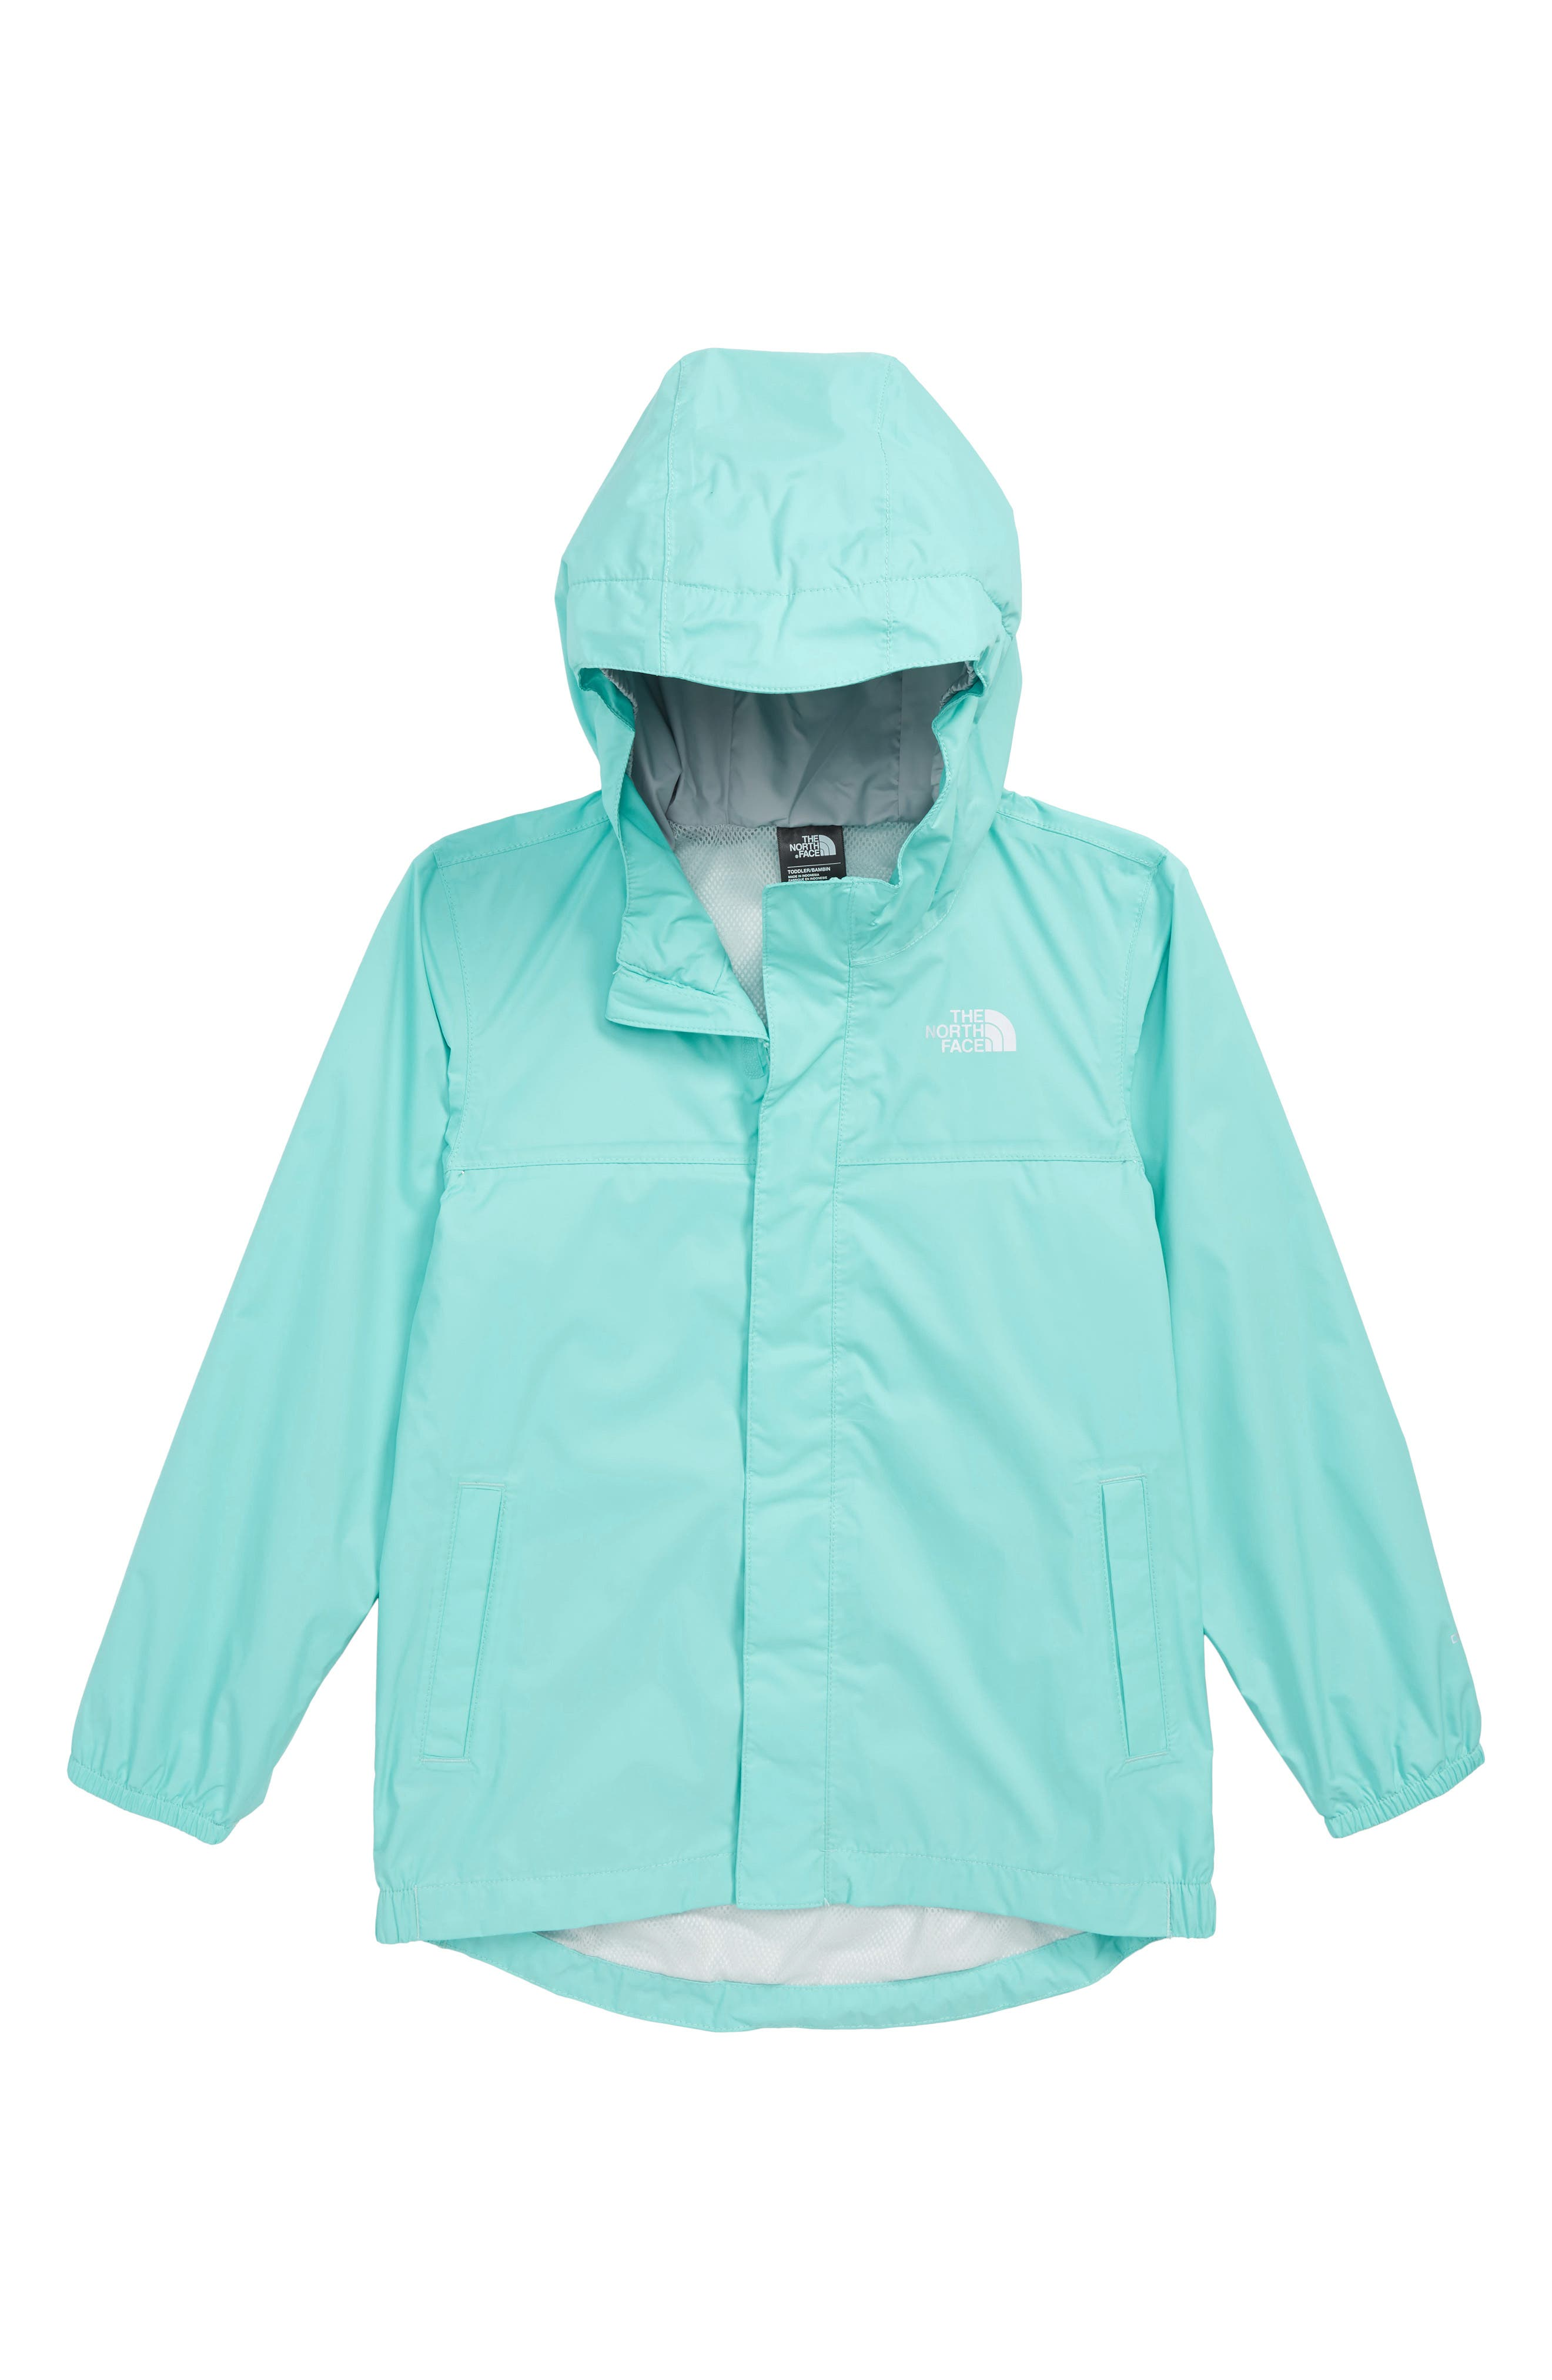 Tailout Hooded Rain Jacket,                             Main thumbnail 1, color,                             MINT BLUE